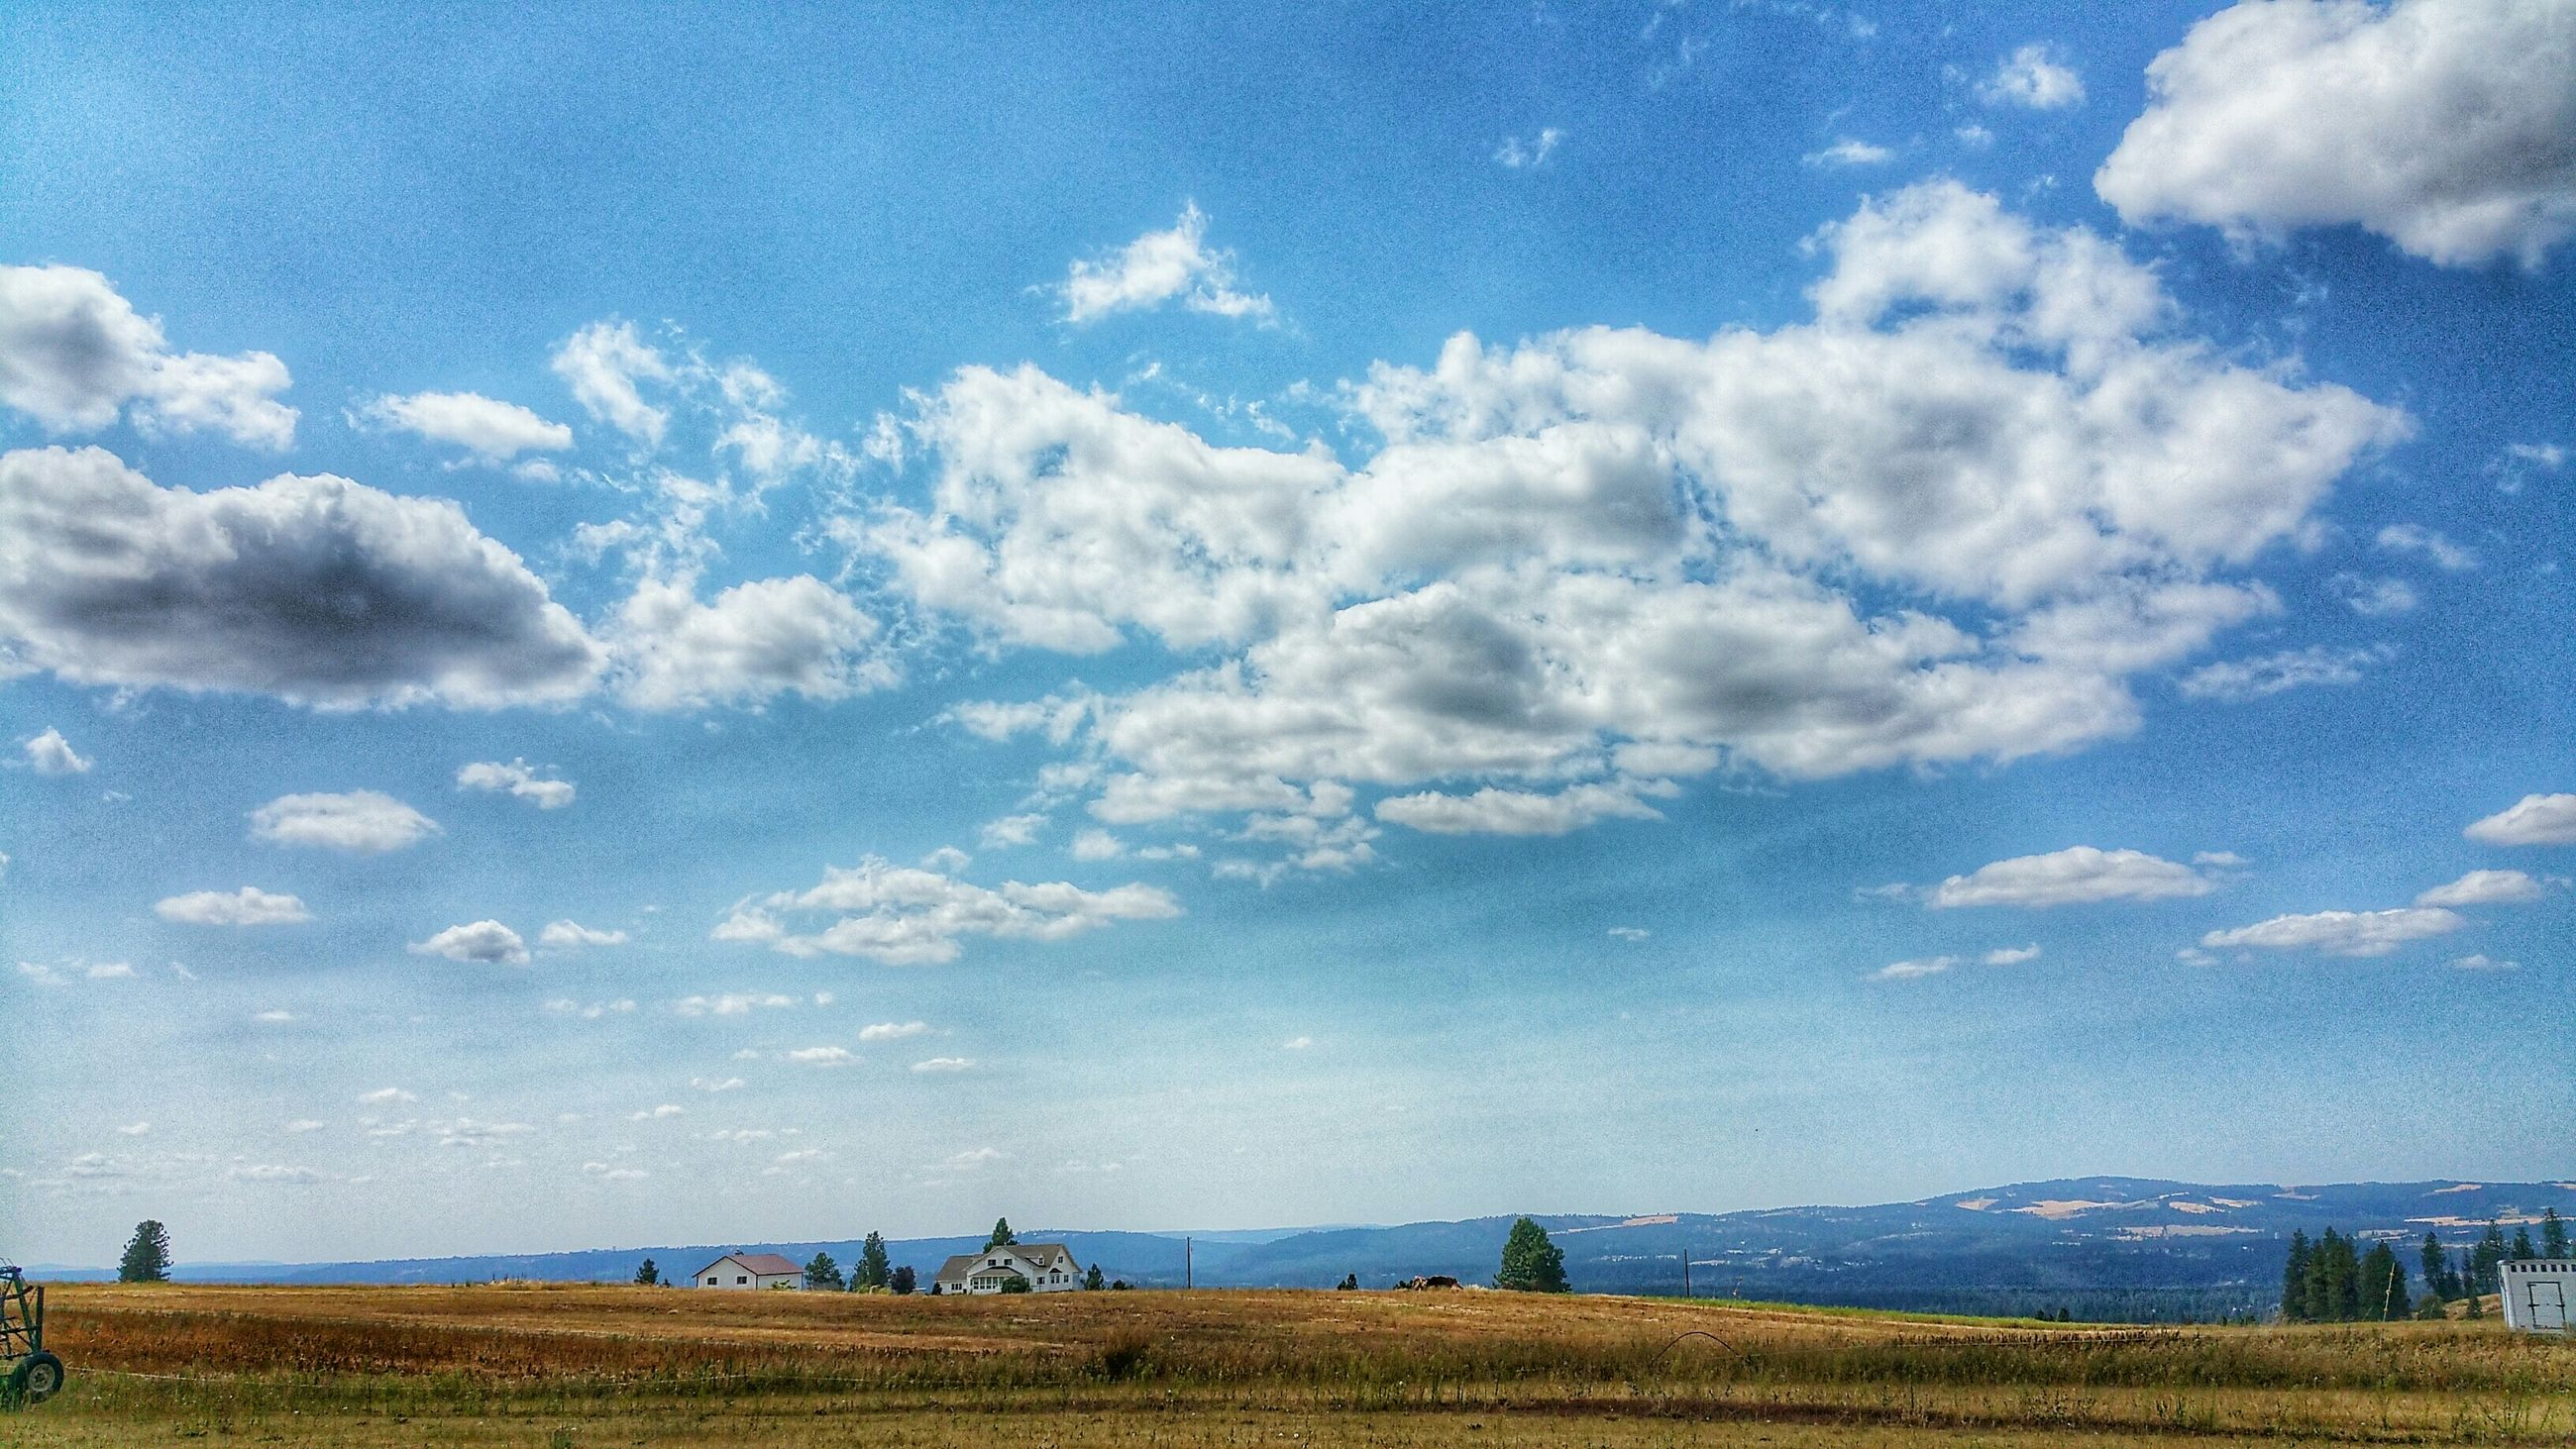 sky, landscape, tranquil scene, tranquility, blue, scenics, cloud - sky, field, beauty in nature, cloud, nature, grass, horizon over land, rural scene, idyllic, cloudy, day, agriculture, remote, non-urban scene